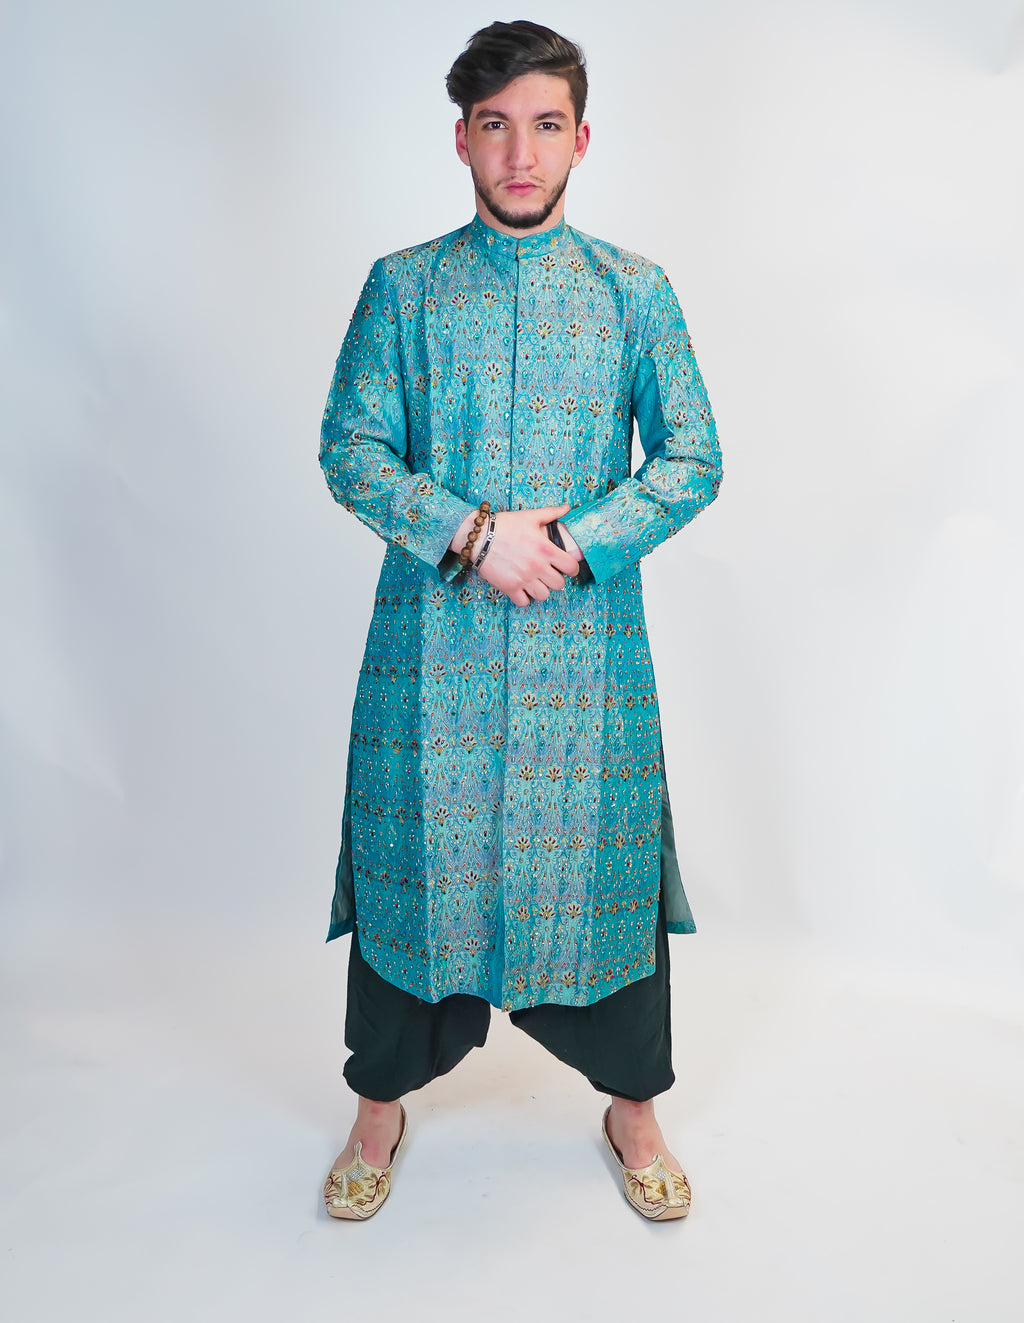 Light Blue Formal Handmade Silk Sherwani with Stone work